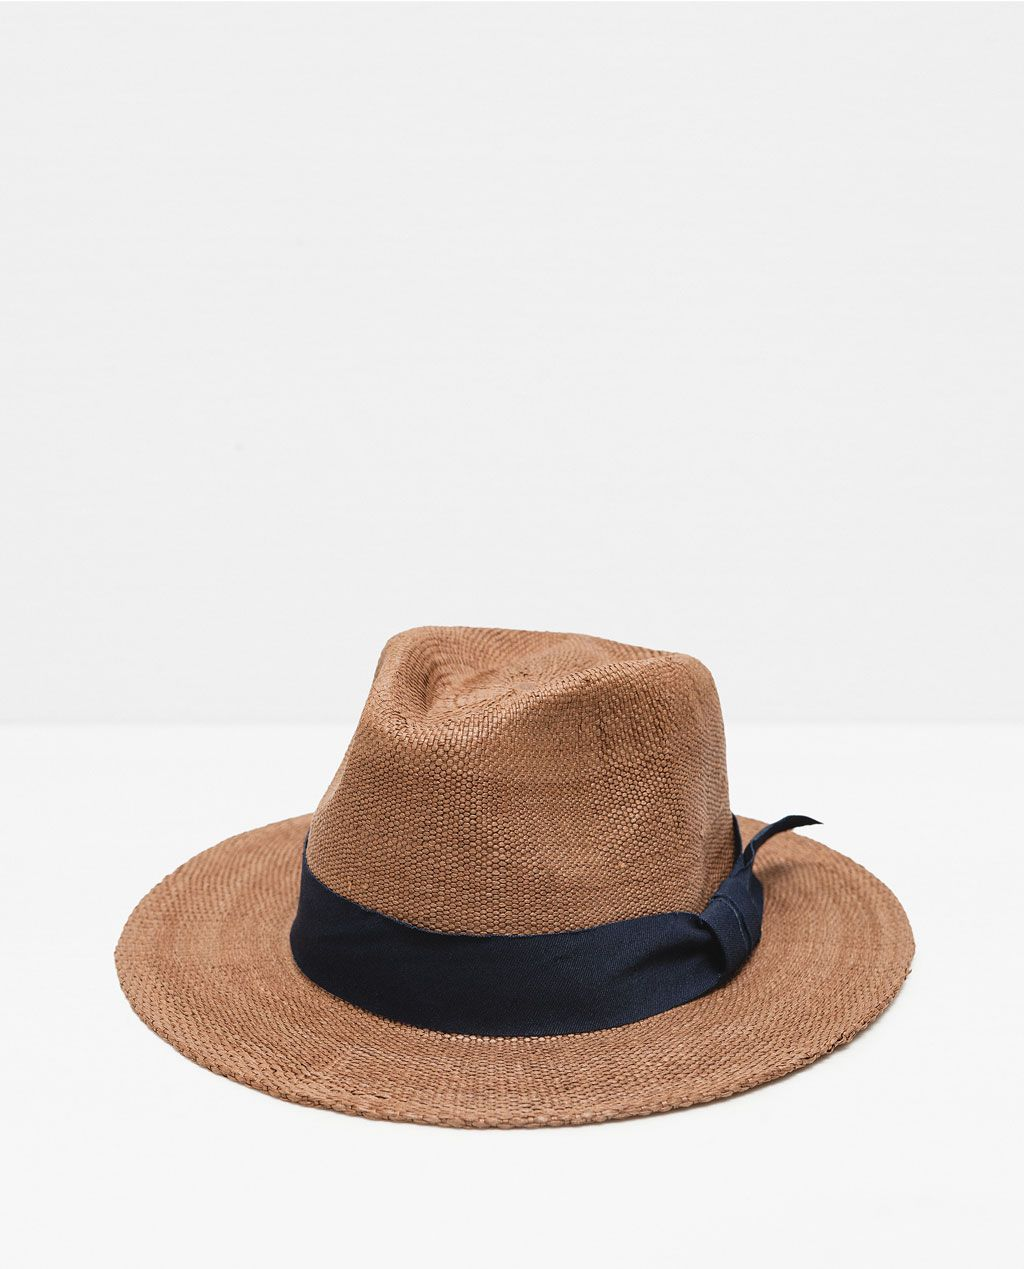 5afe6cd29cc0b STRAW HAT